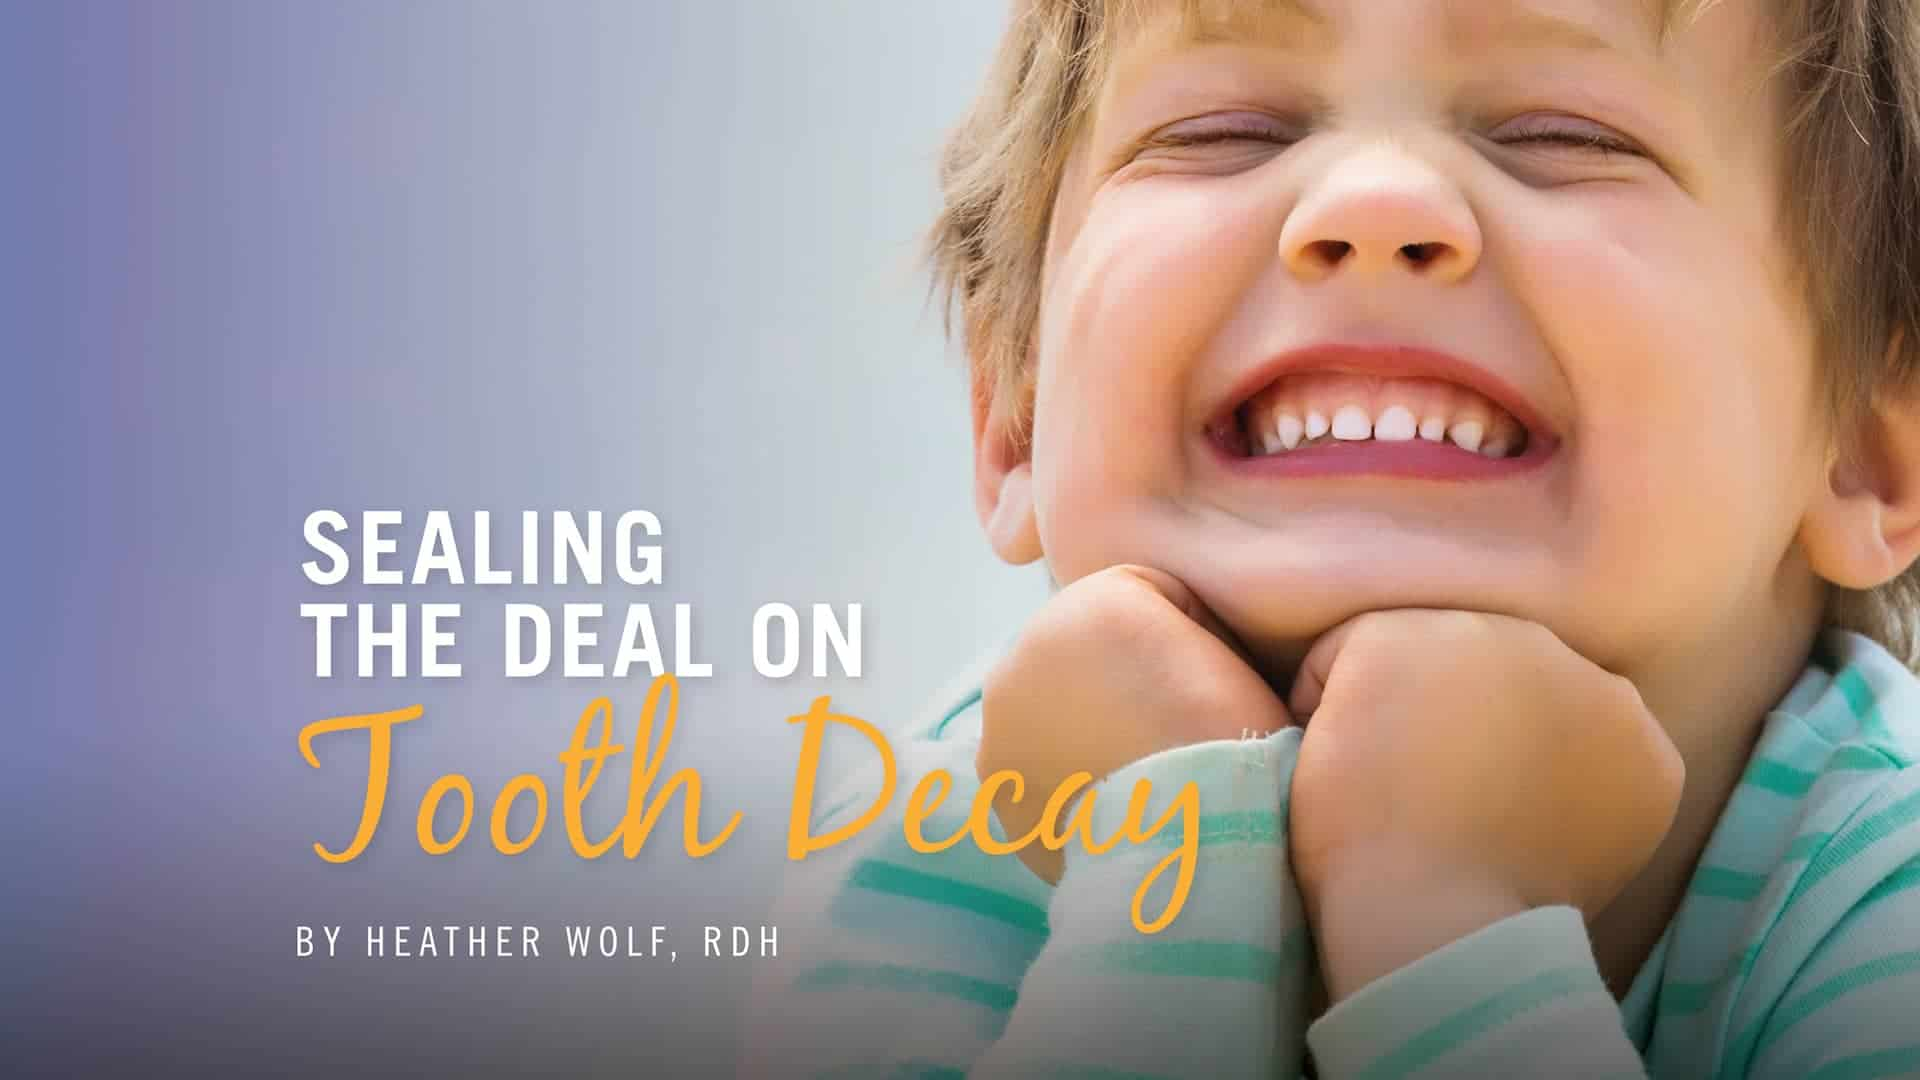 SEALING the deal on Tooth Decay